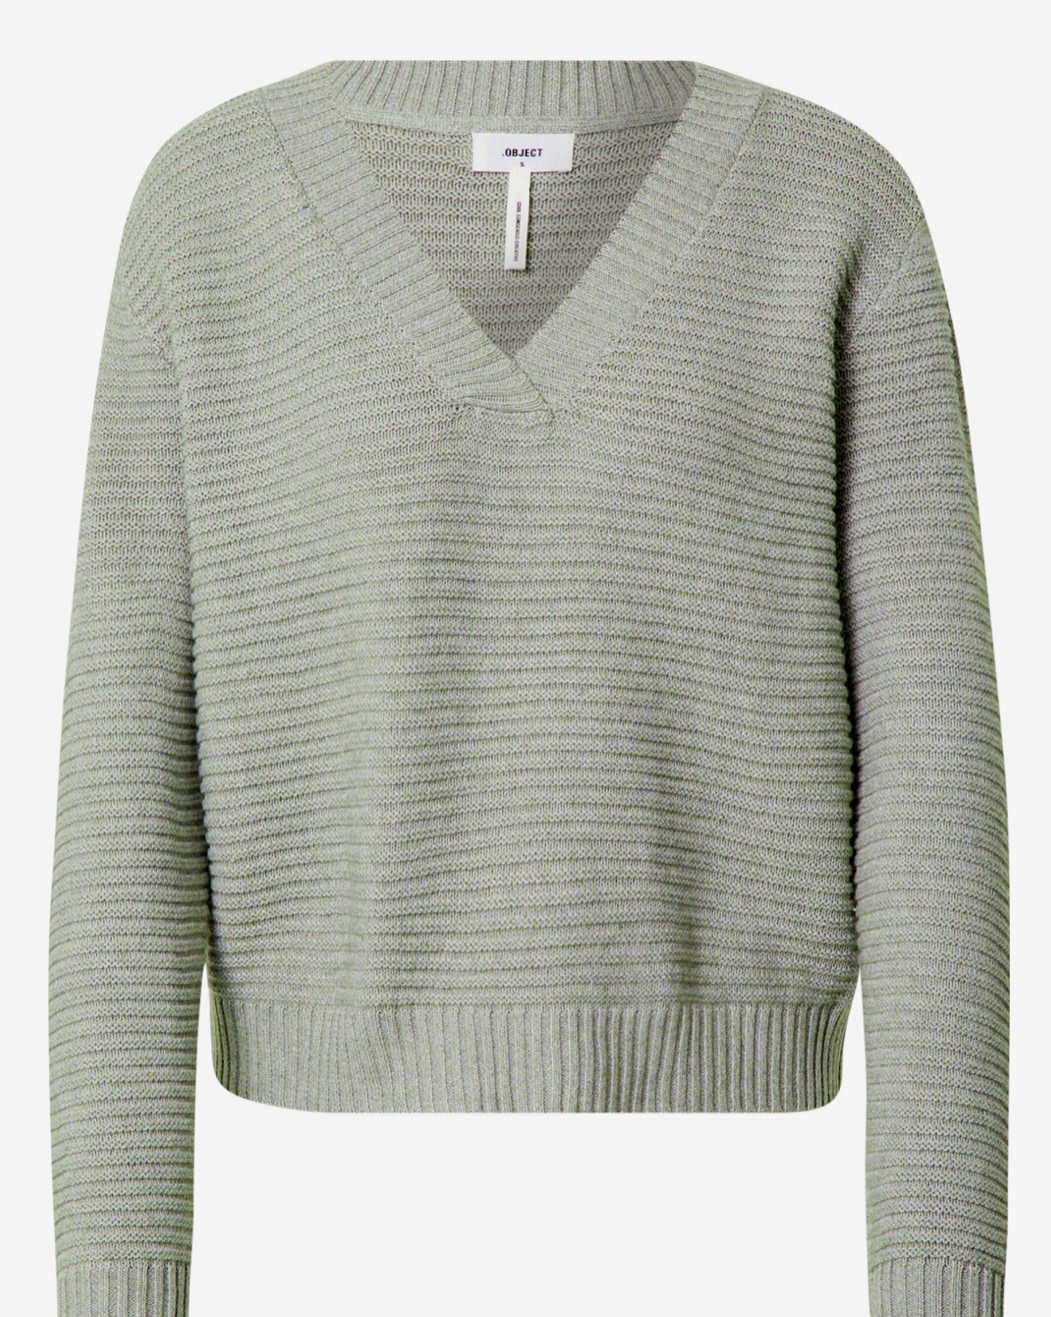 OBJECT OBJECT - objcanice l/s knit pullover rep